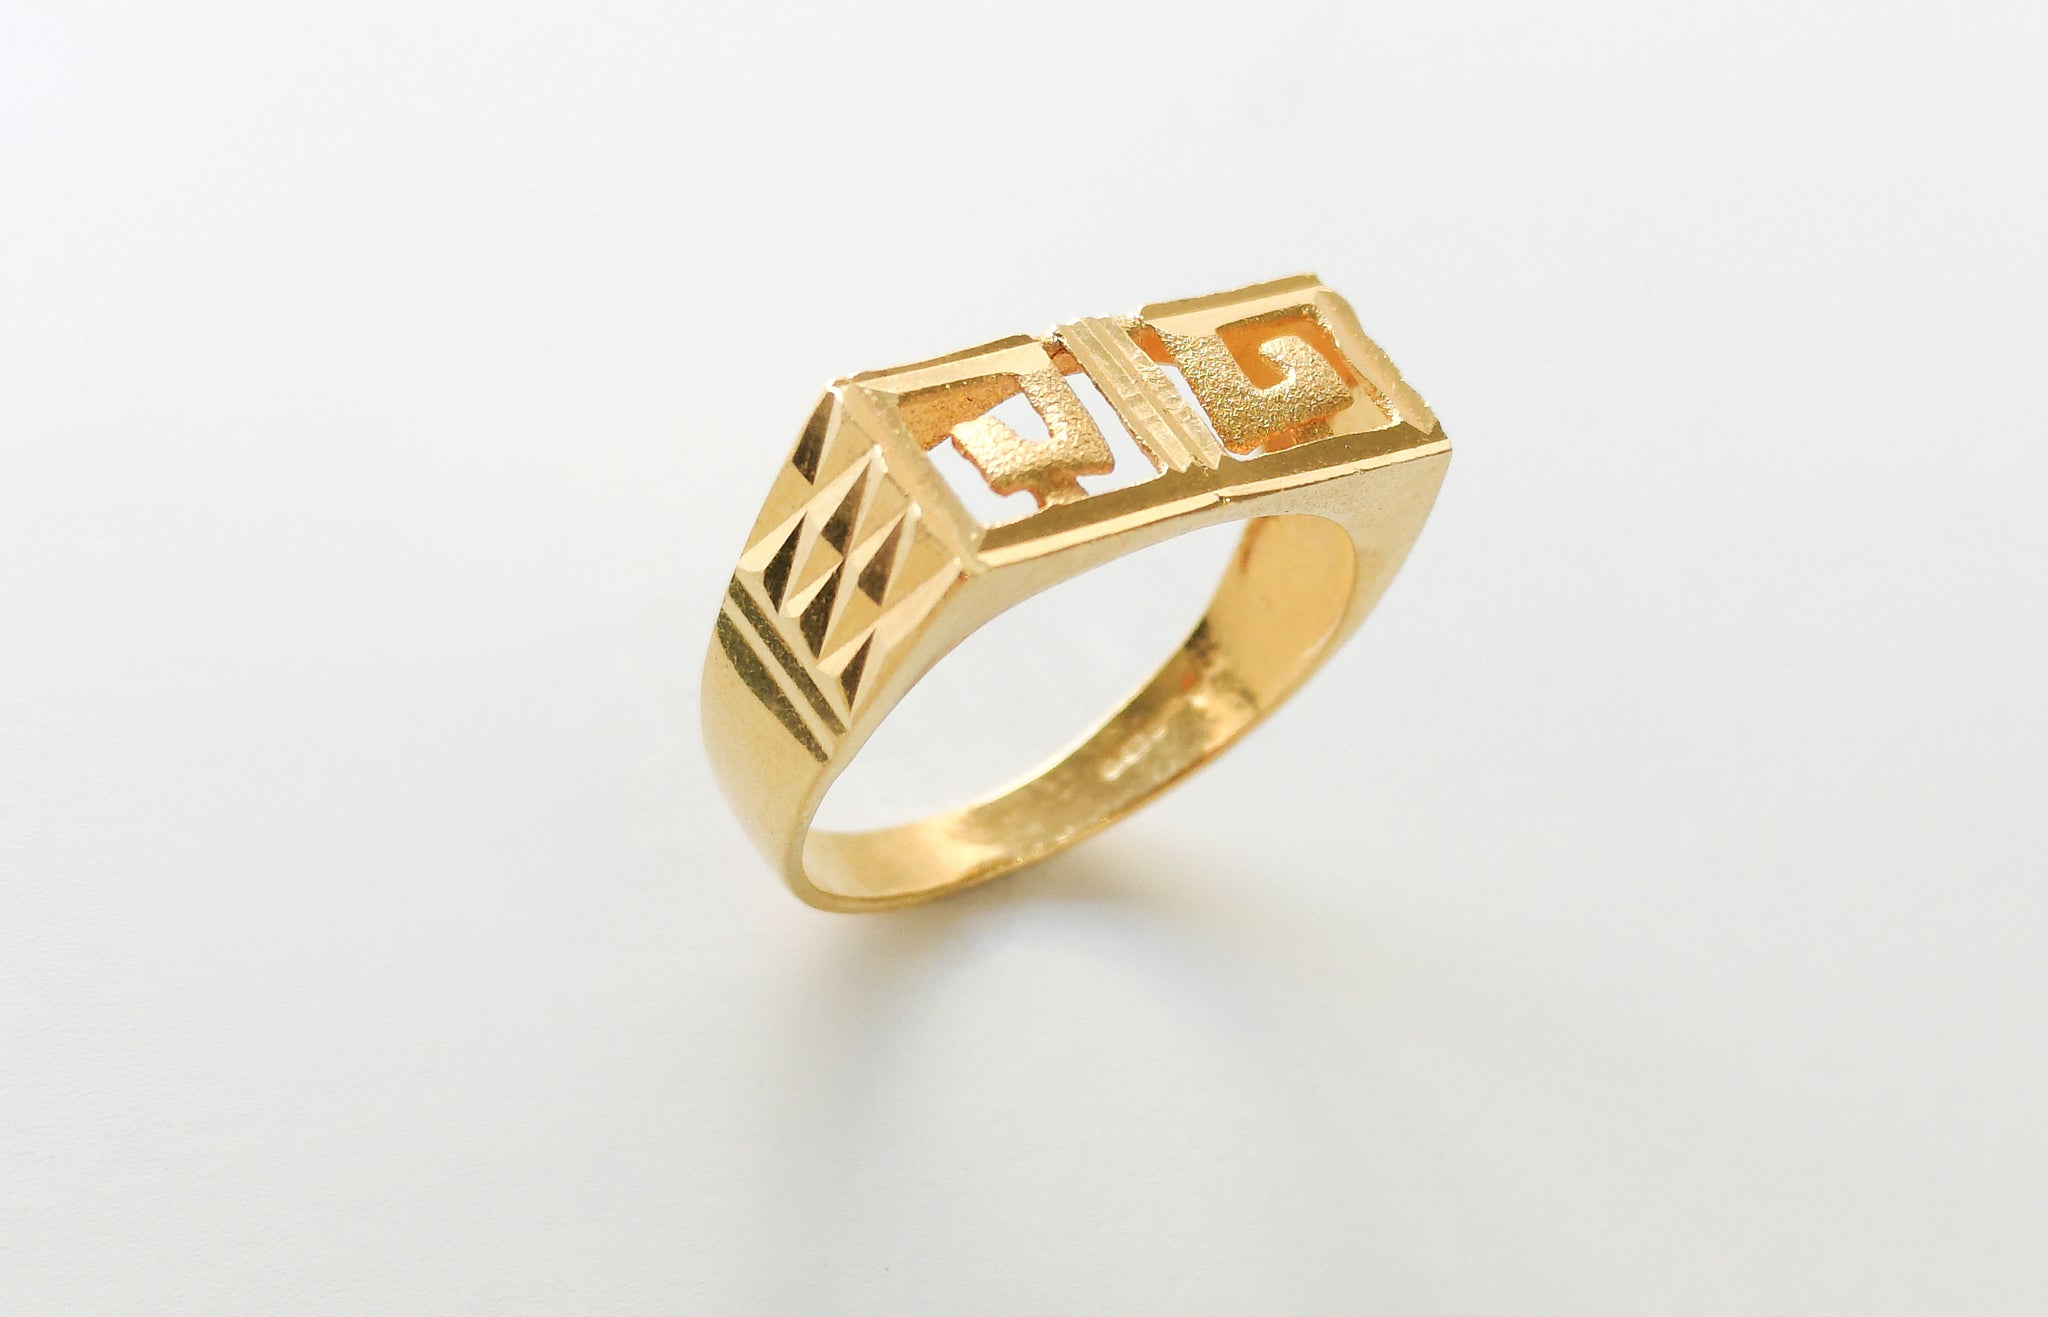 22ct Gold Gents Ring (4.5g) GR-3519